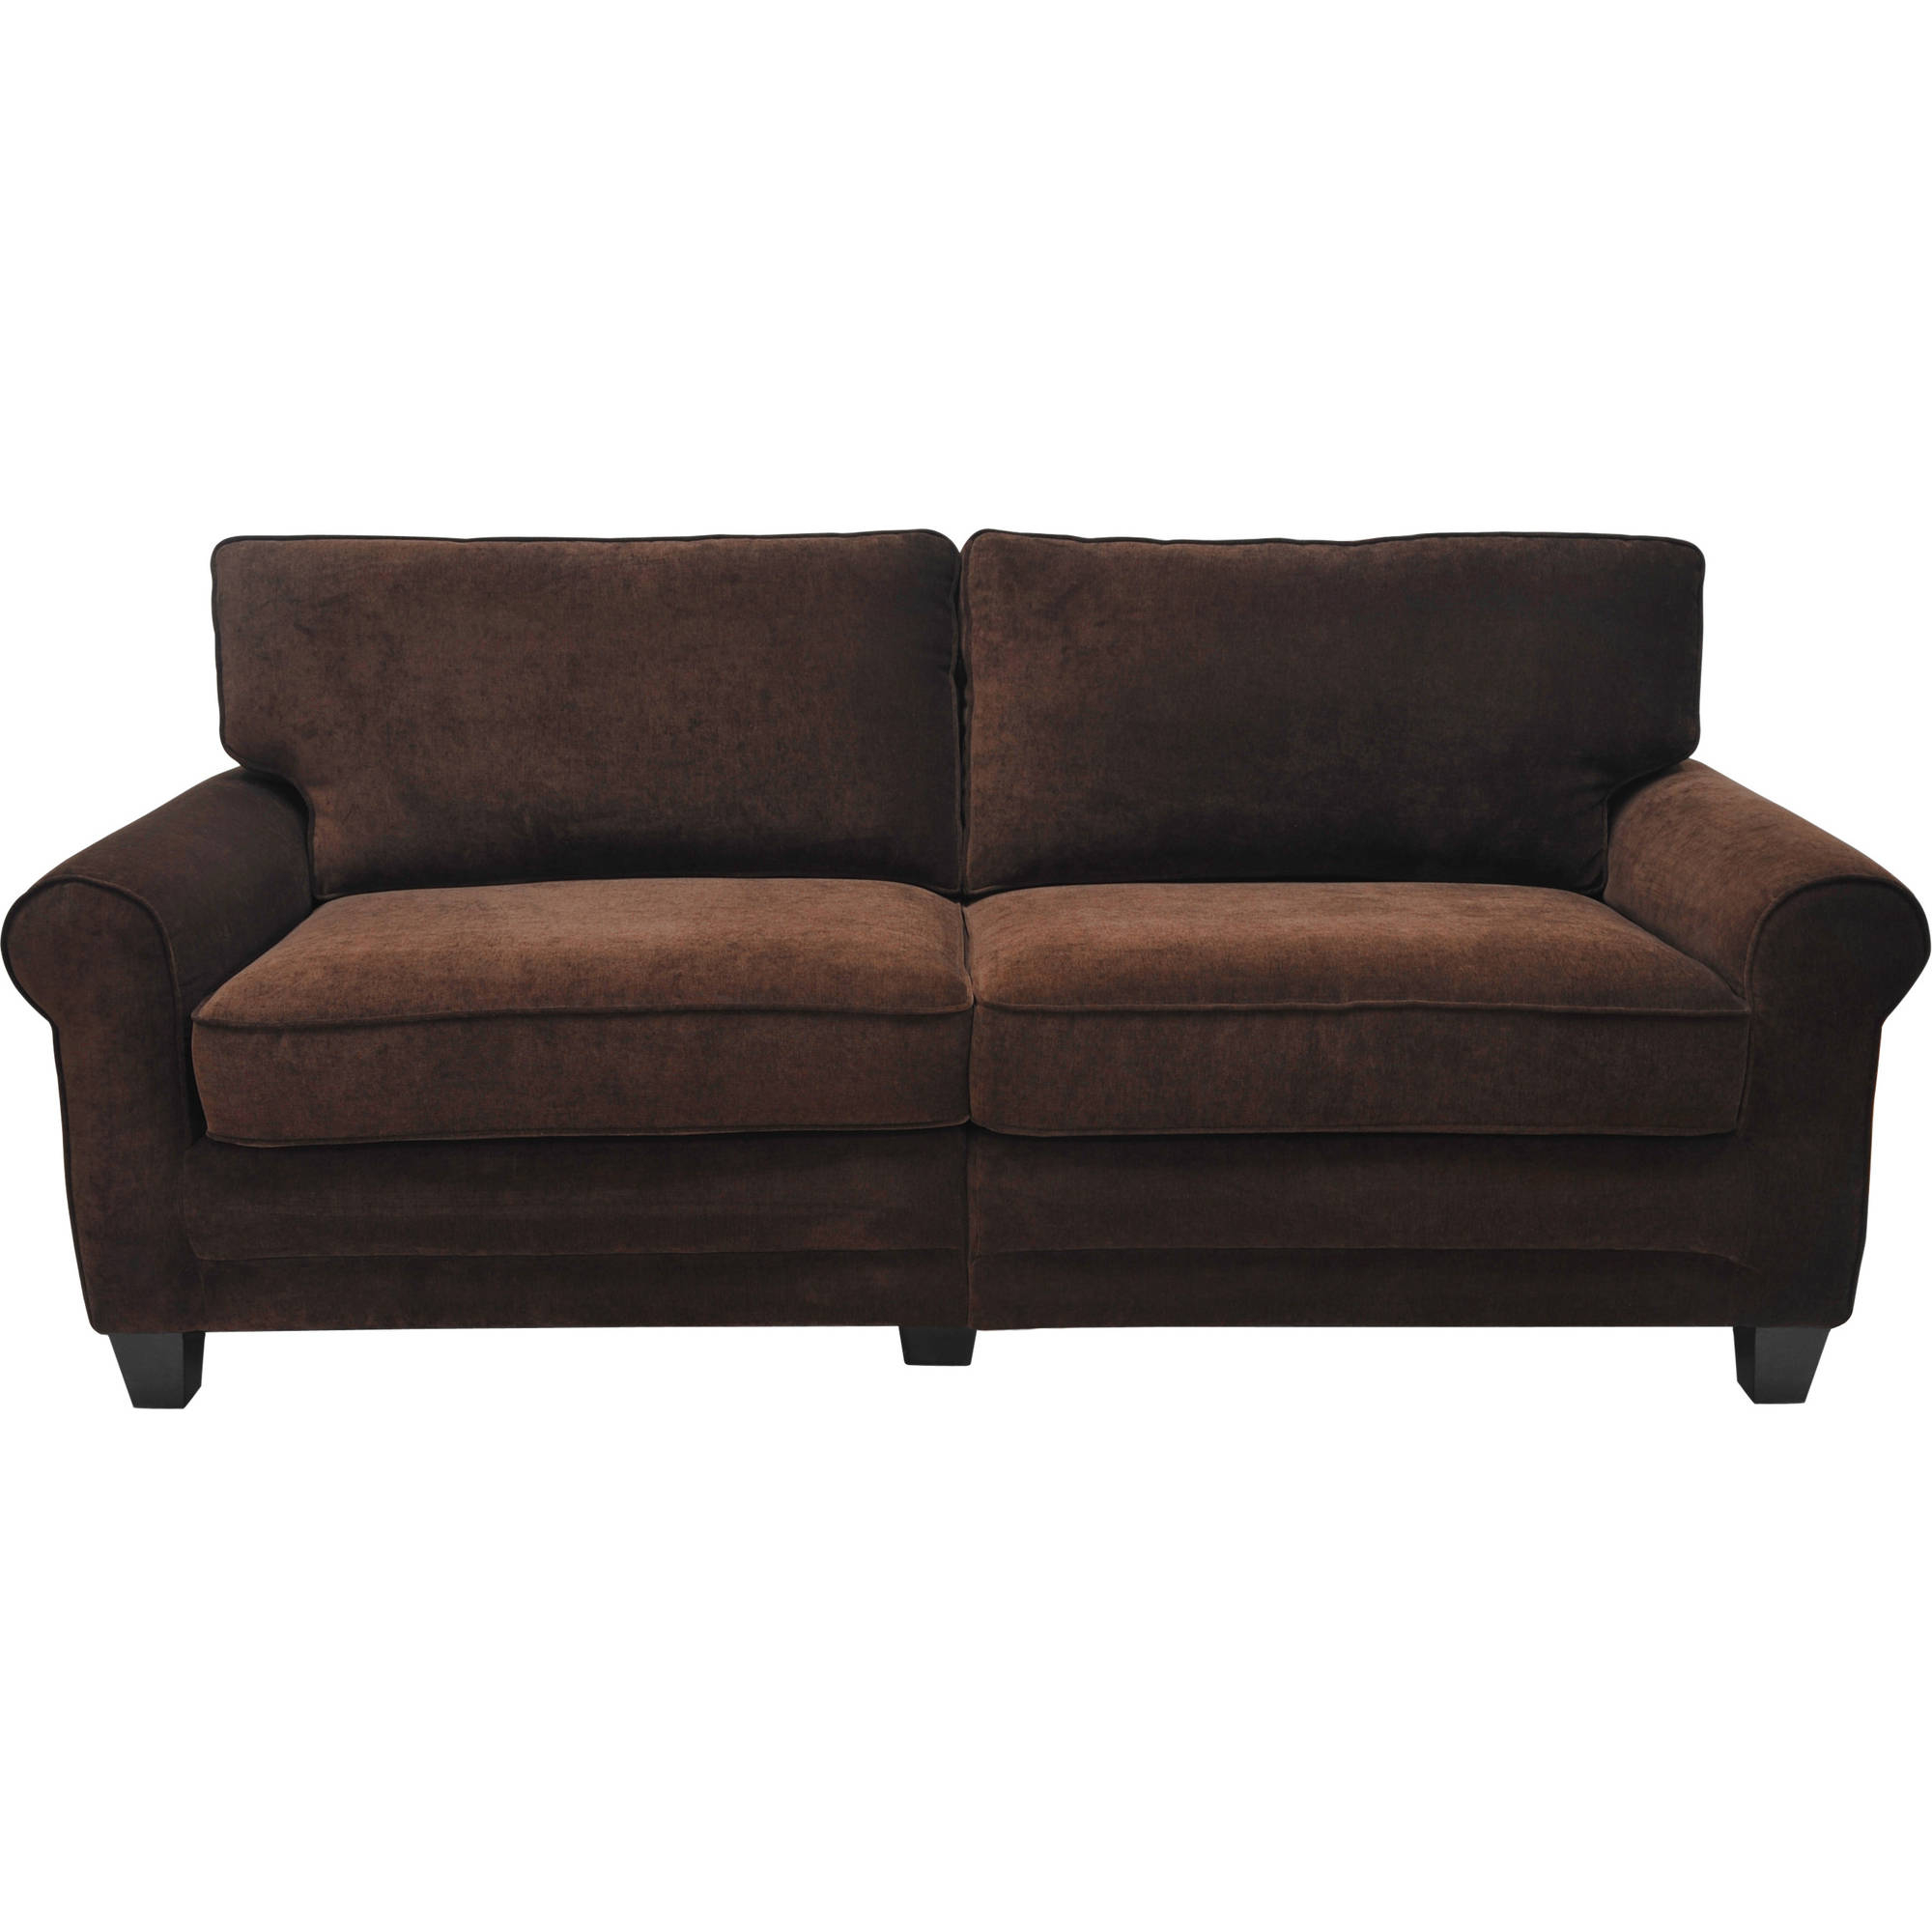 "Mansfield Graphite Velvet Sofa Chairs Inside Preferred Serta Rta Copenhagen Collection 73"" Sofa, Multiple Colors – Walmart (View 11 of 20)"